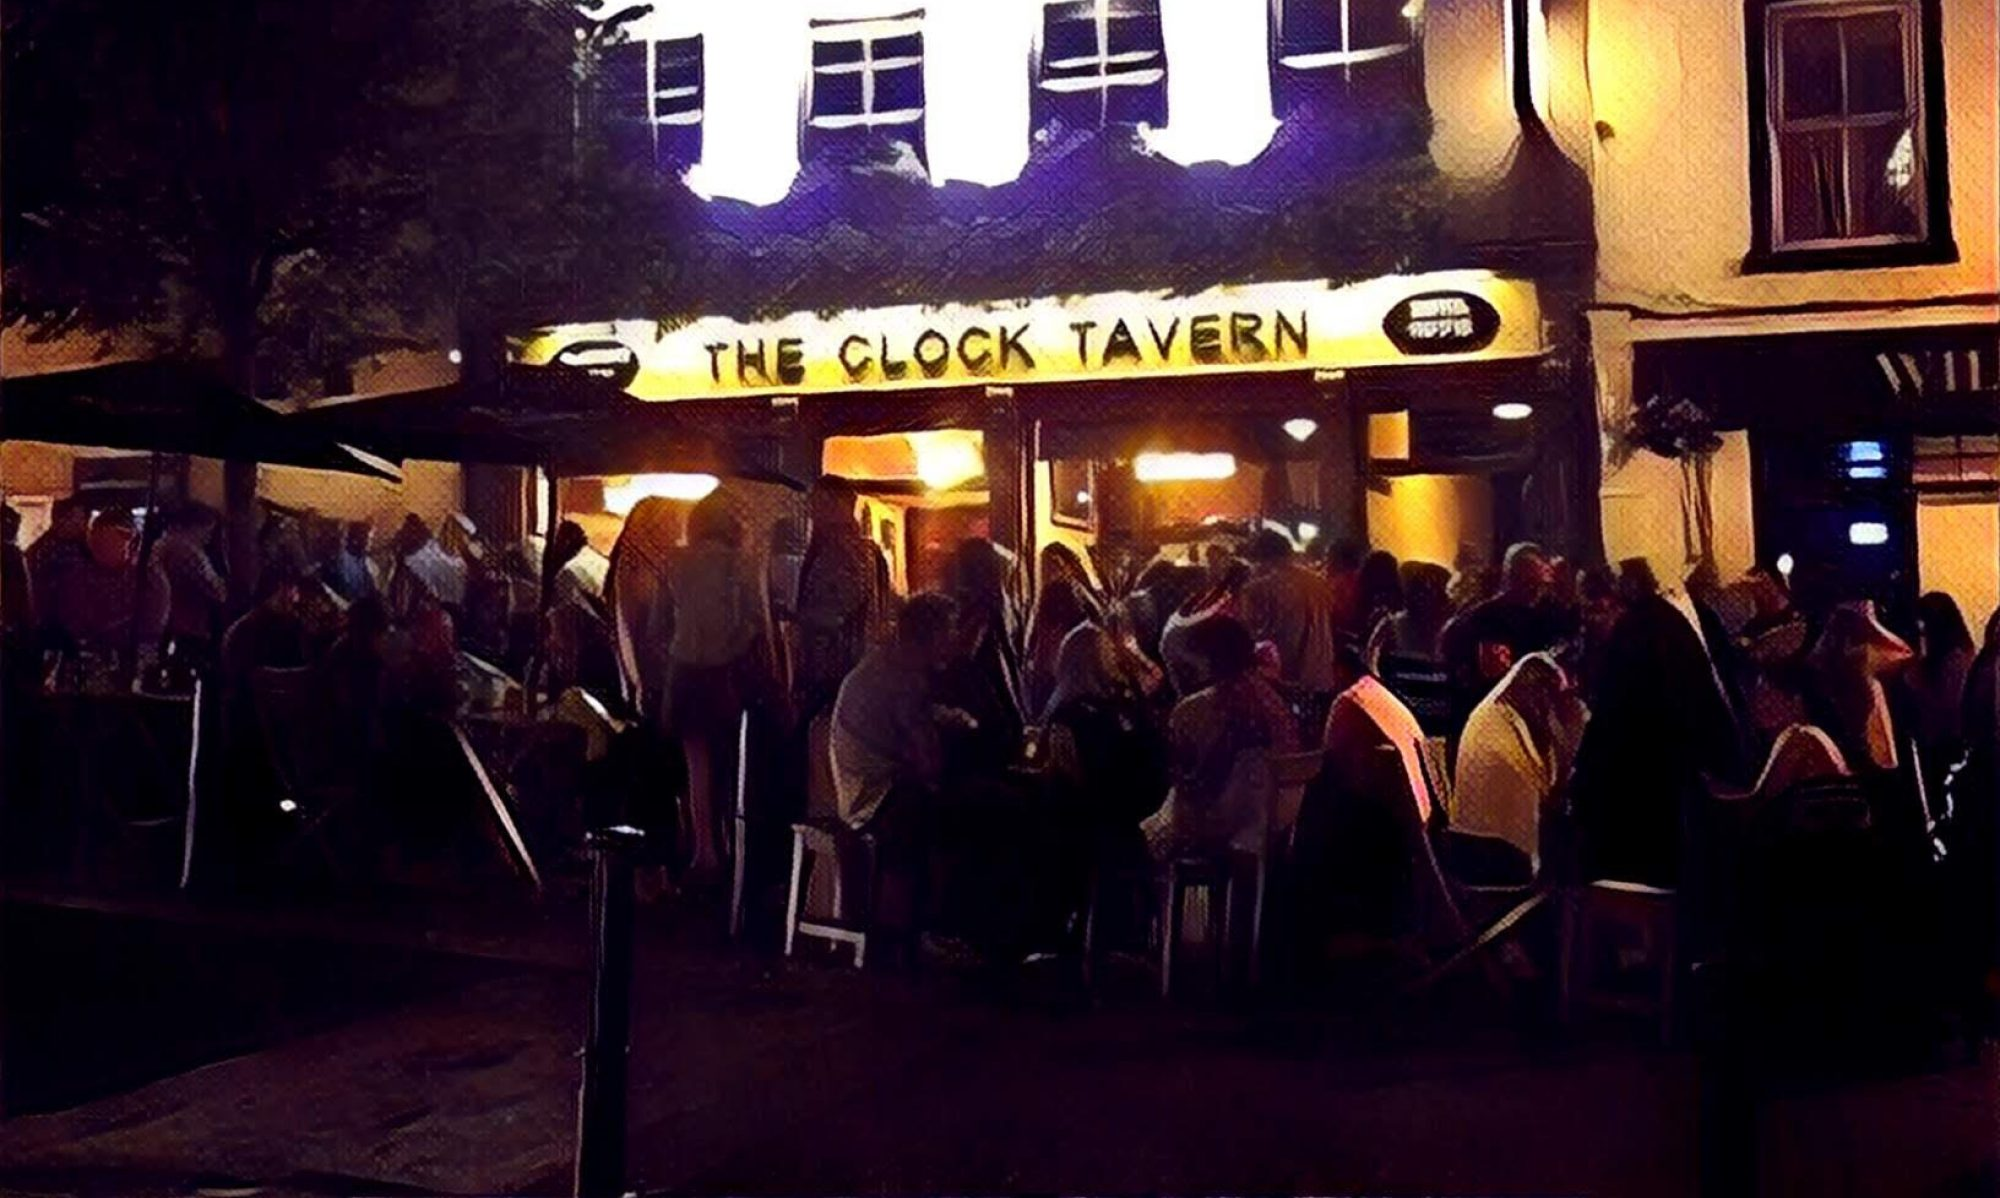 The Clock Tavern